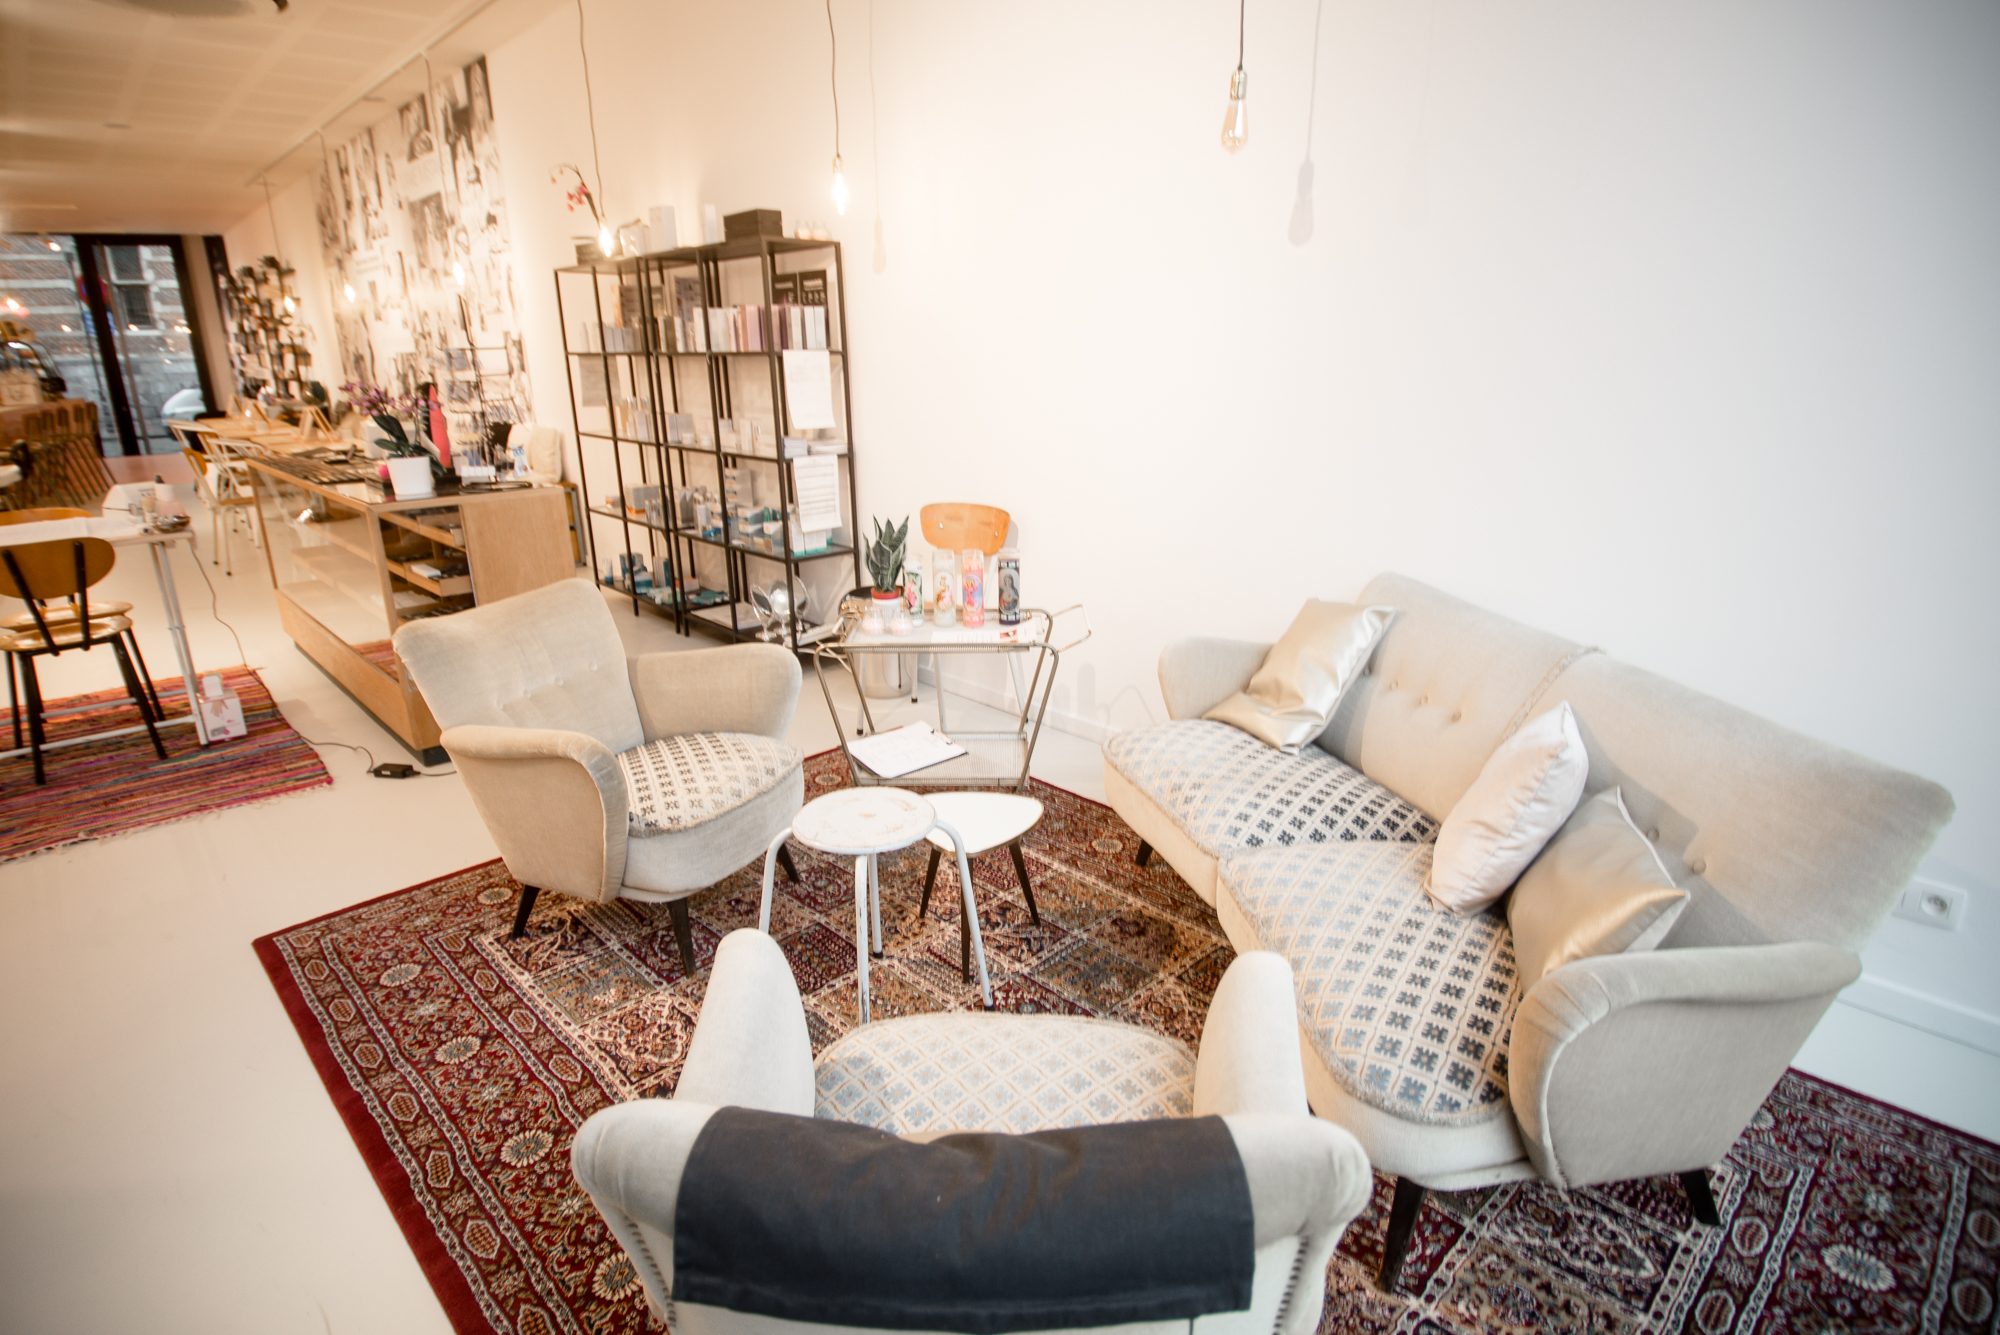 cafe-beaute-hasselt-hotpost-must-visit-beauty-28